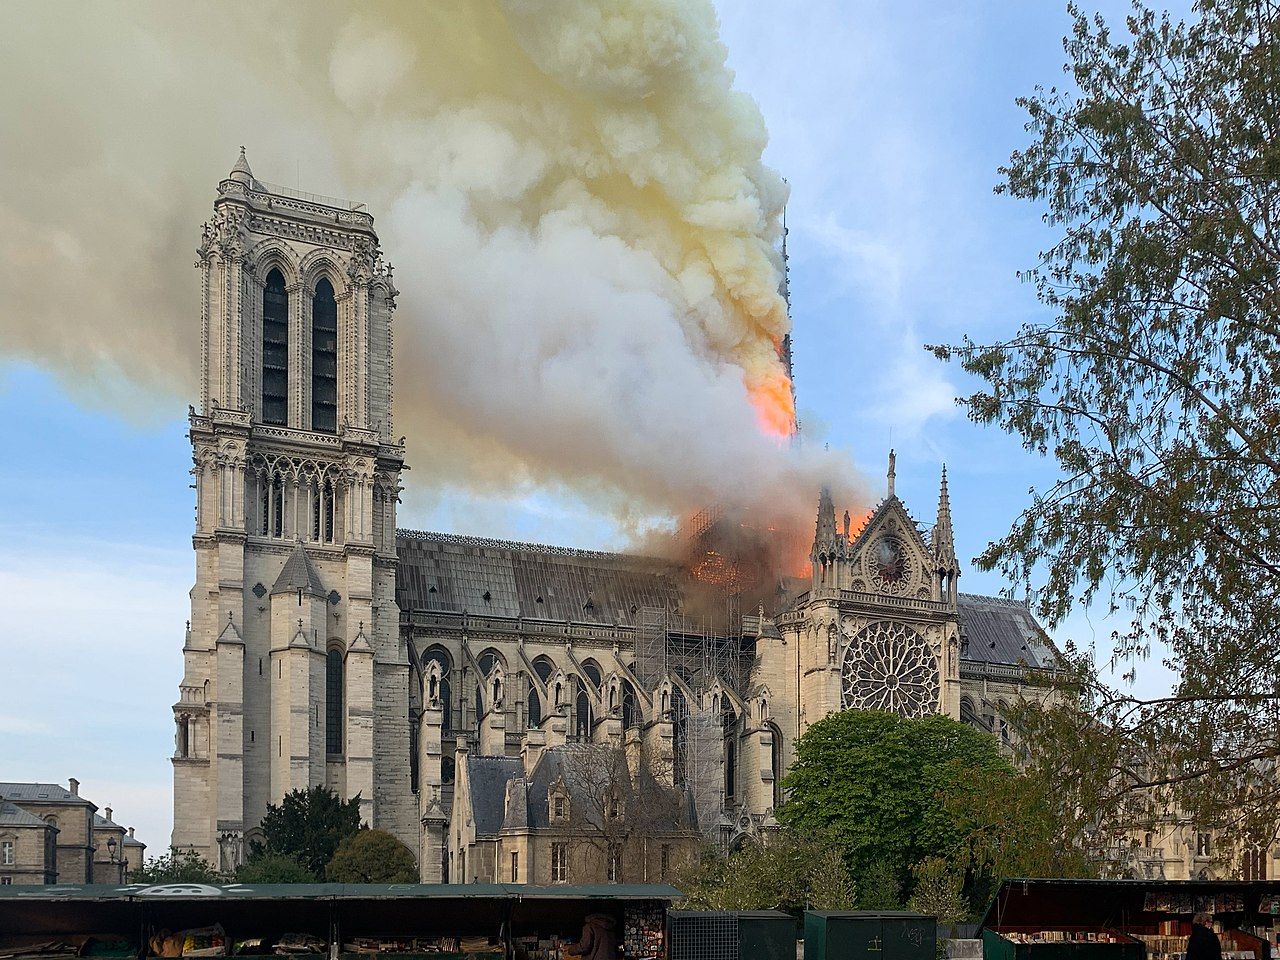 The Notre Dame cathedral in Paris suffers a massive fire. Image credit: Wandrille de Preville//Wikimedia Commons